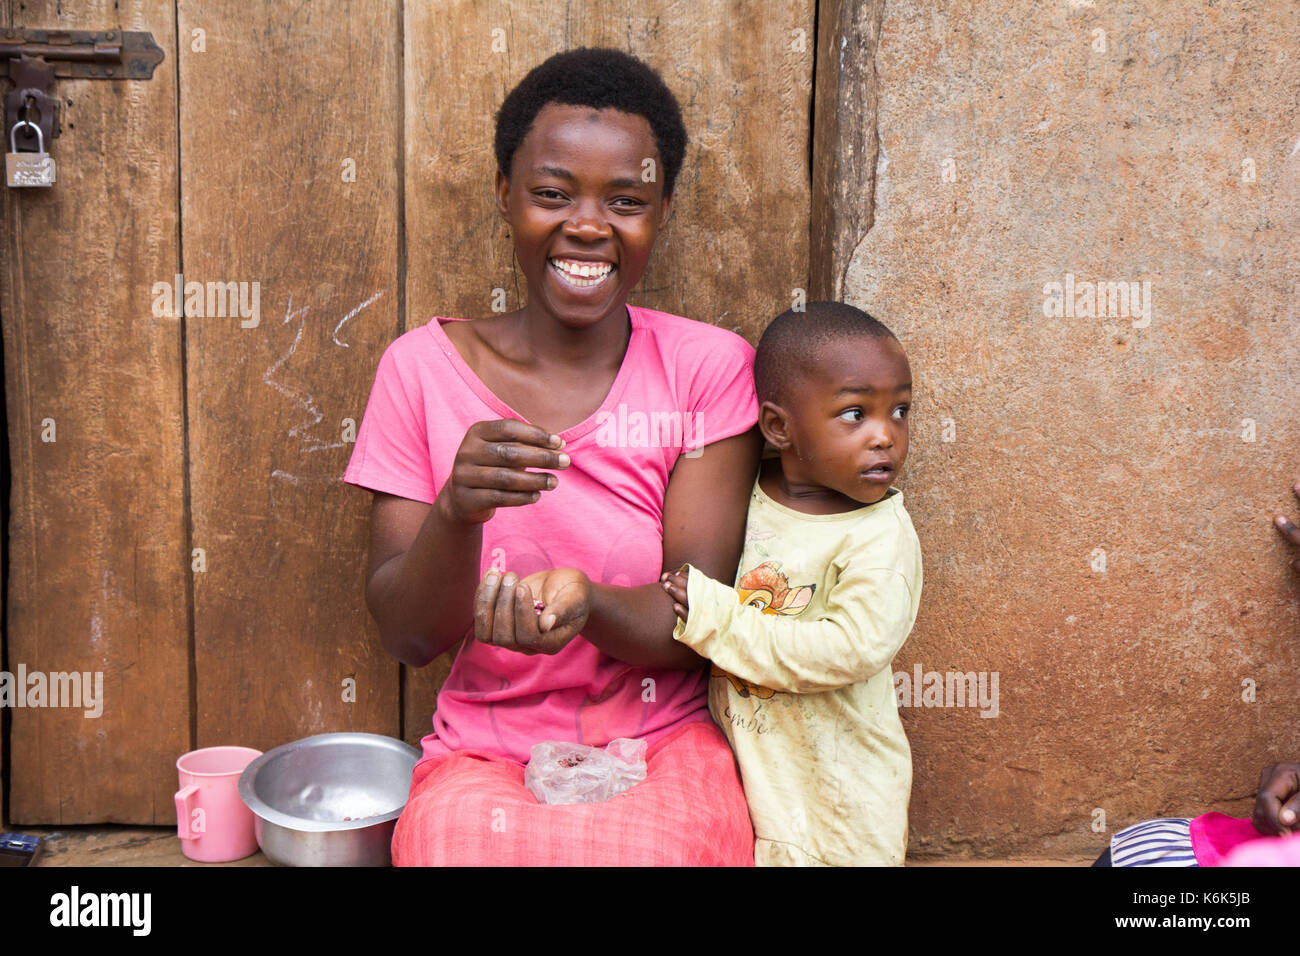 Lugazi, Uganda. 09 June 2017. A laughing African mother with a little child boy. The woman is sitting on door threshold sorting grains. - Stock Image